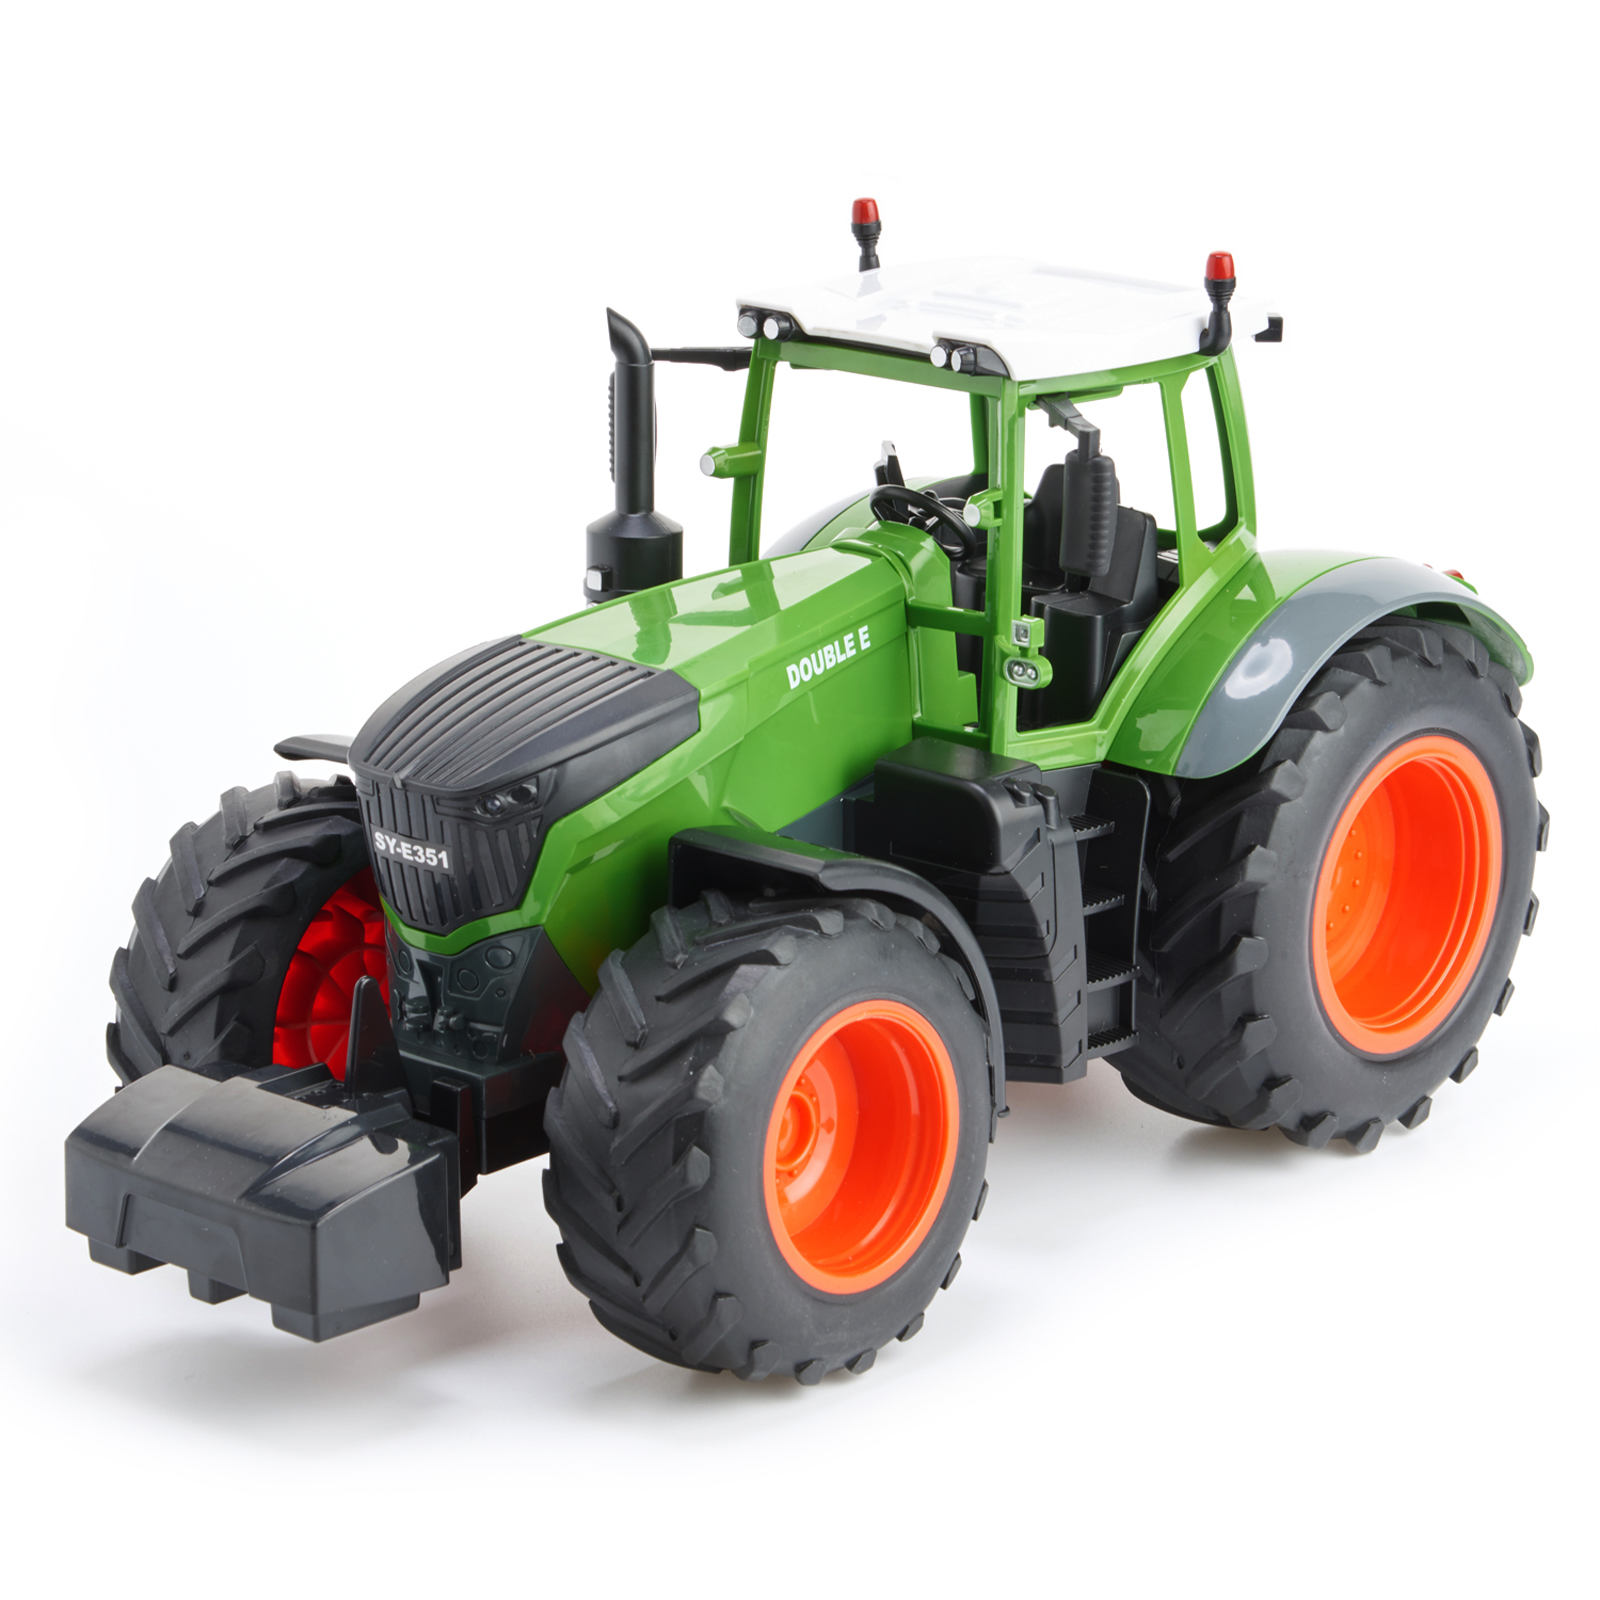 Cheerwing 1:16 RC Farm Tractor 2.4Ghz Simulation appearance Auto-coding Monster Tread by Double E